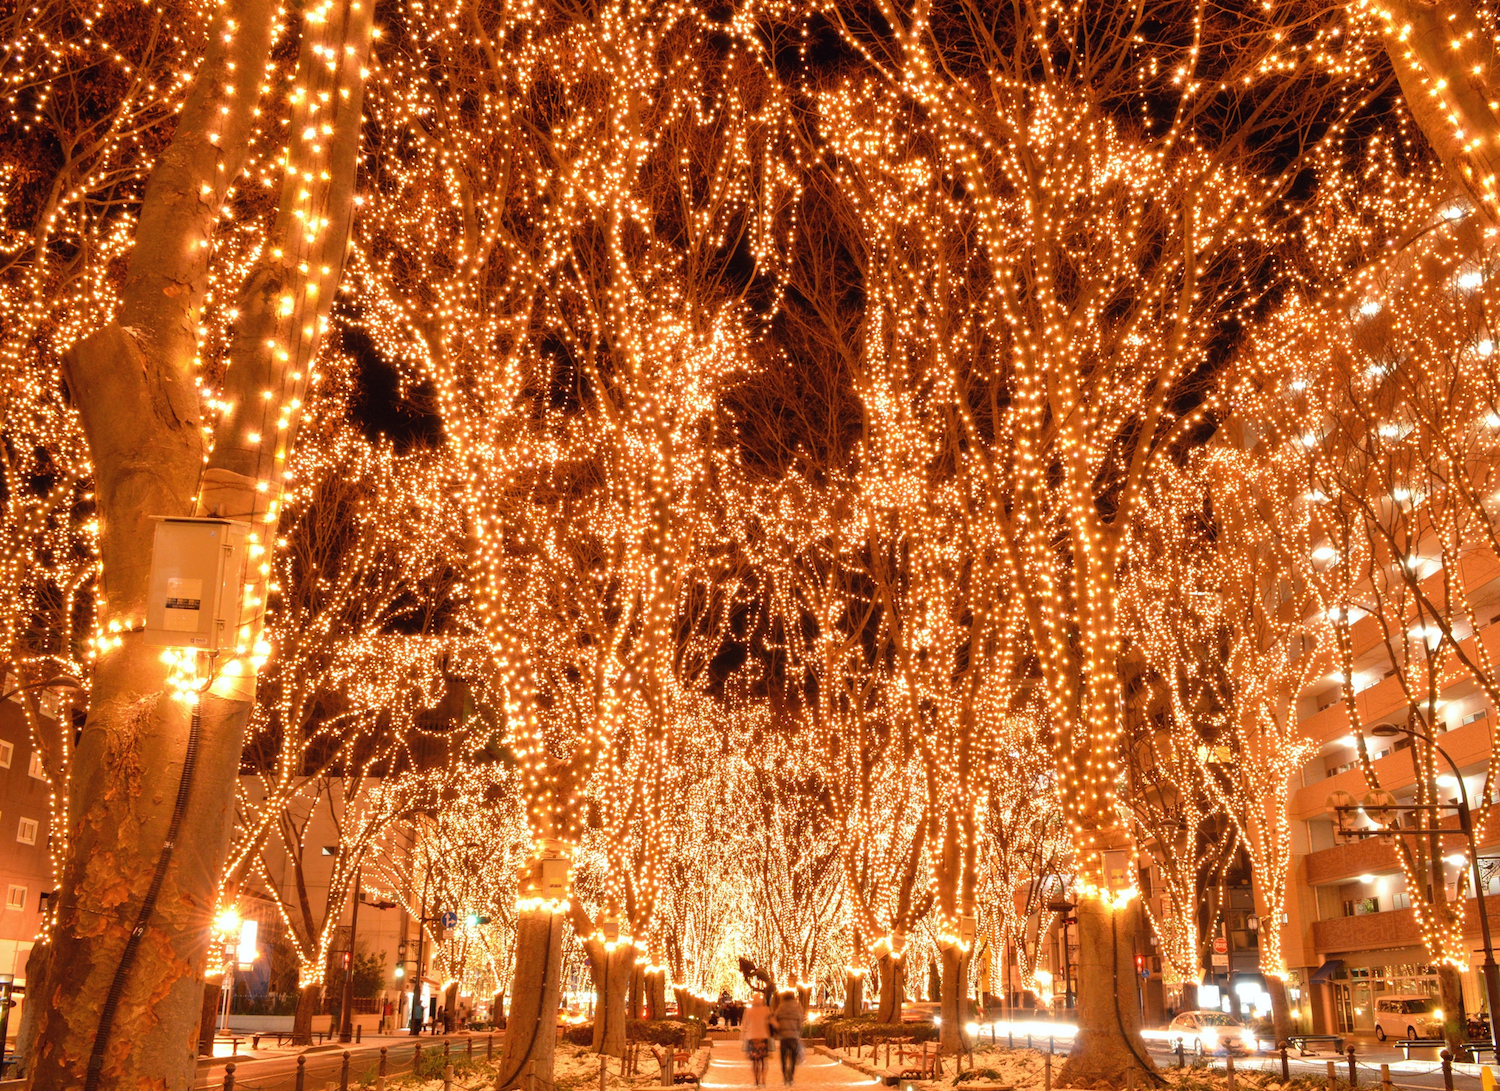 Japanese Christmas.The Ideal Japanese Christmas Date Savvy Tokyo